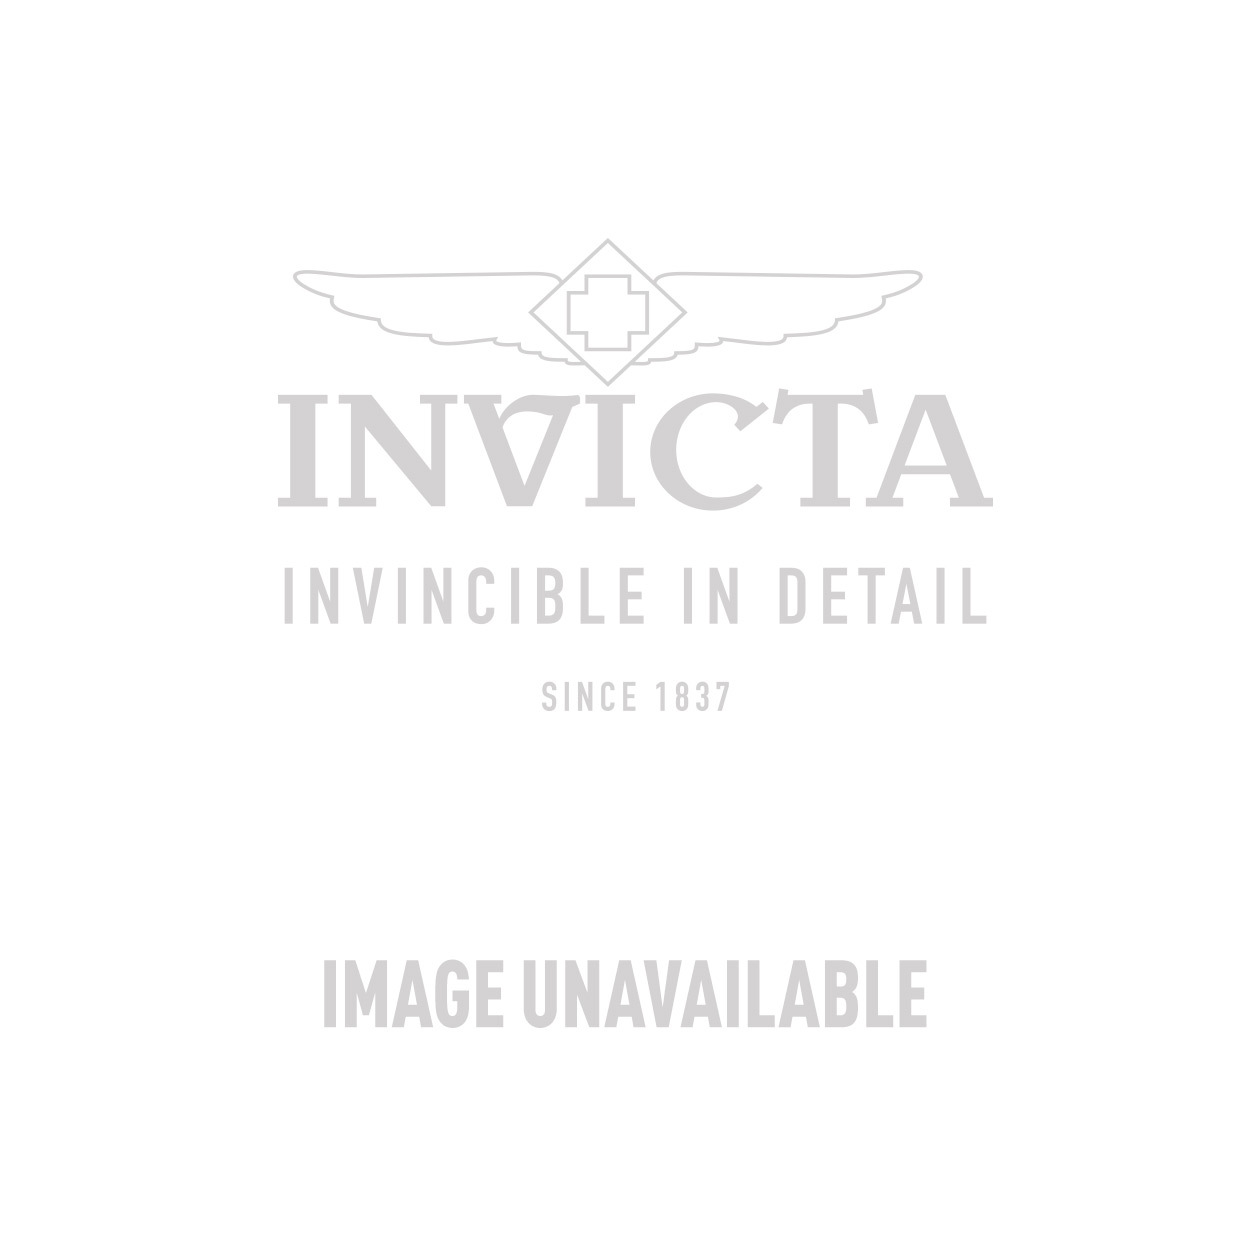 Invicta Sea Base Swiss Made Quartz Watch - Black, Stainless Steel case Stainless Steel band - Model 18001